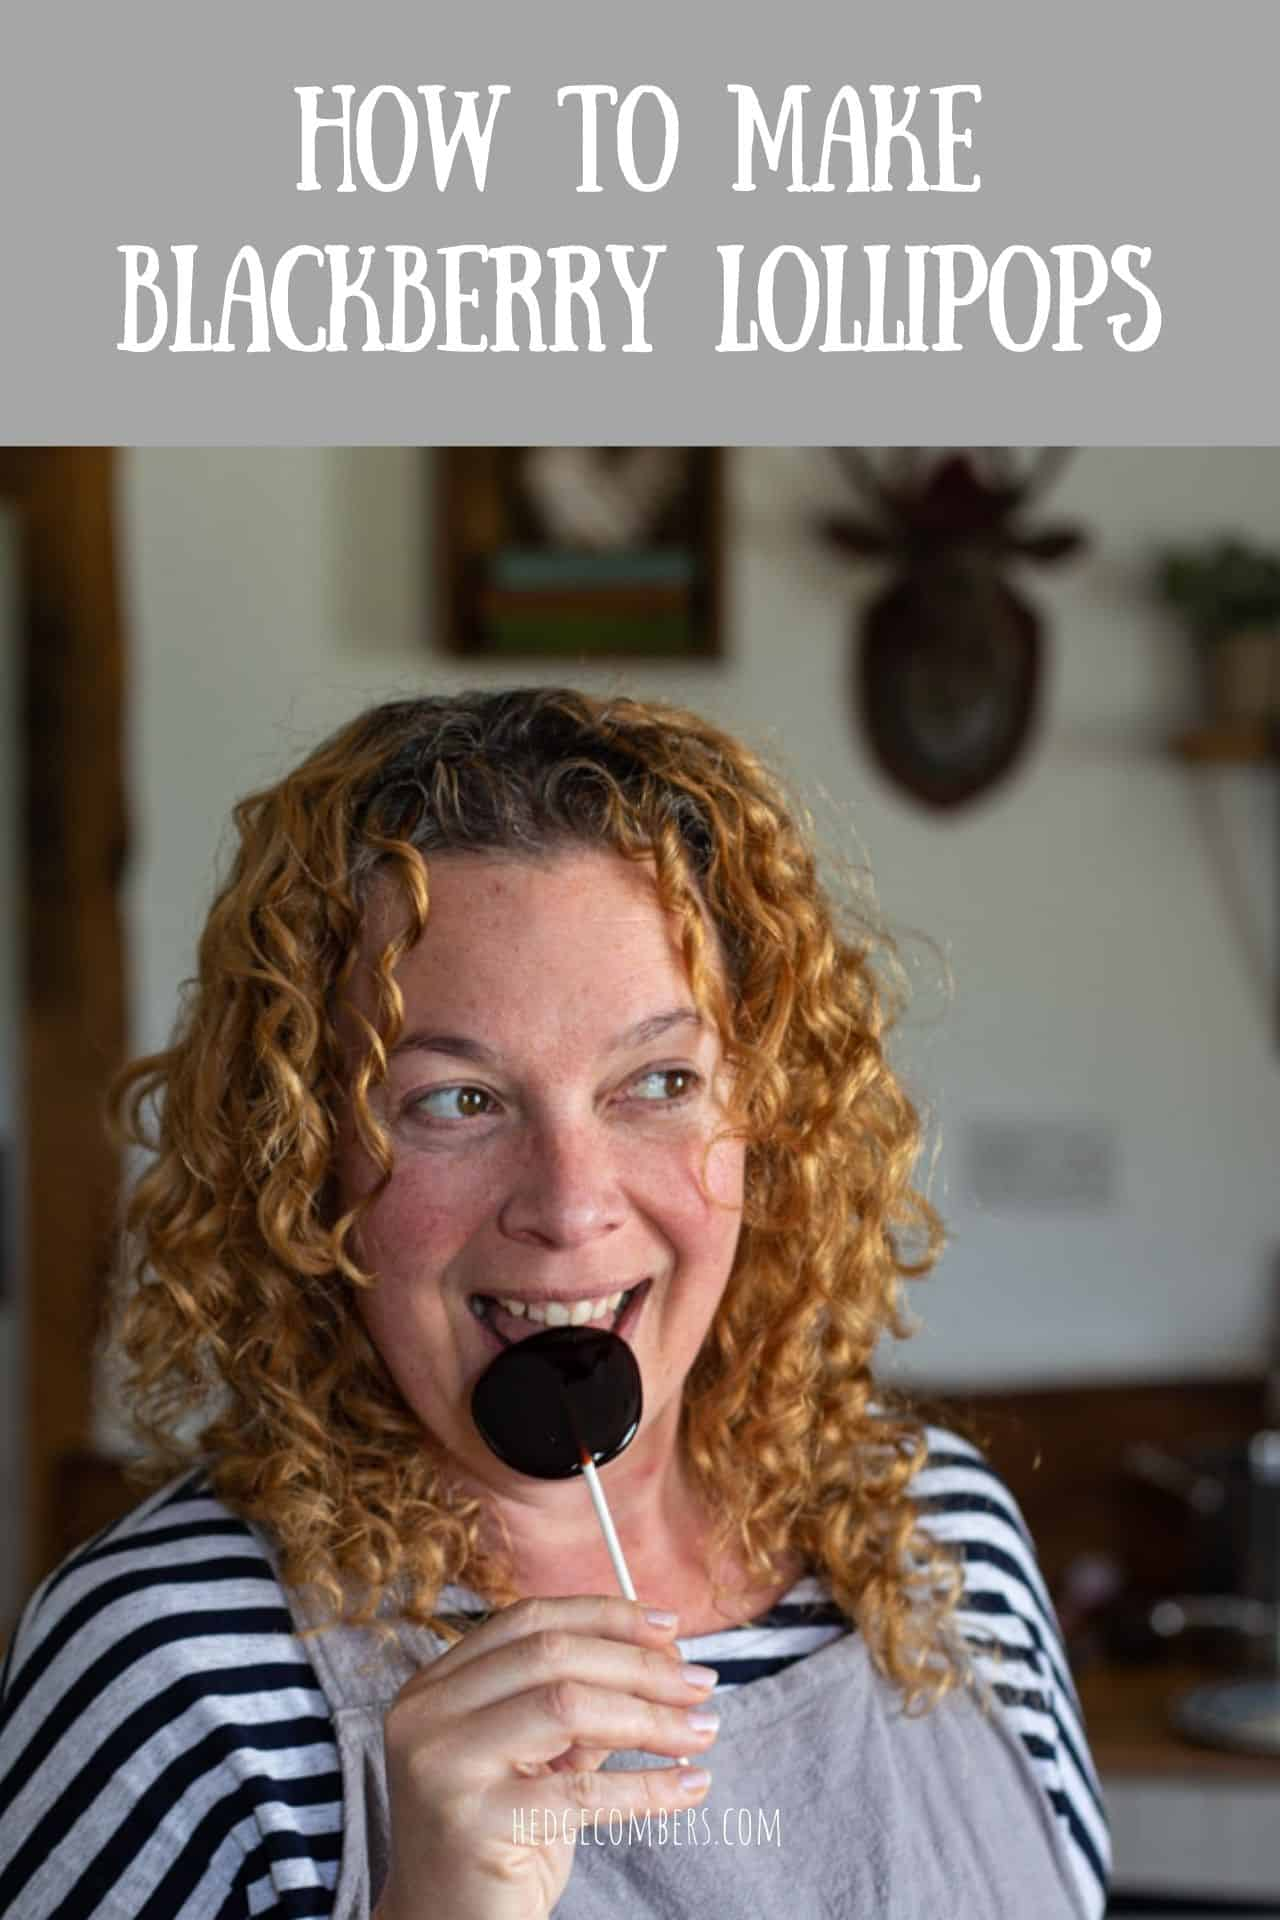 woman with red curly hair eating a homemade blackberry lollipop